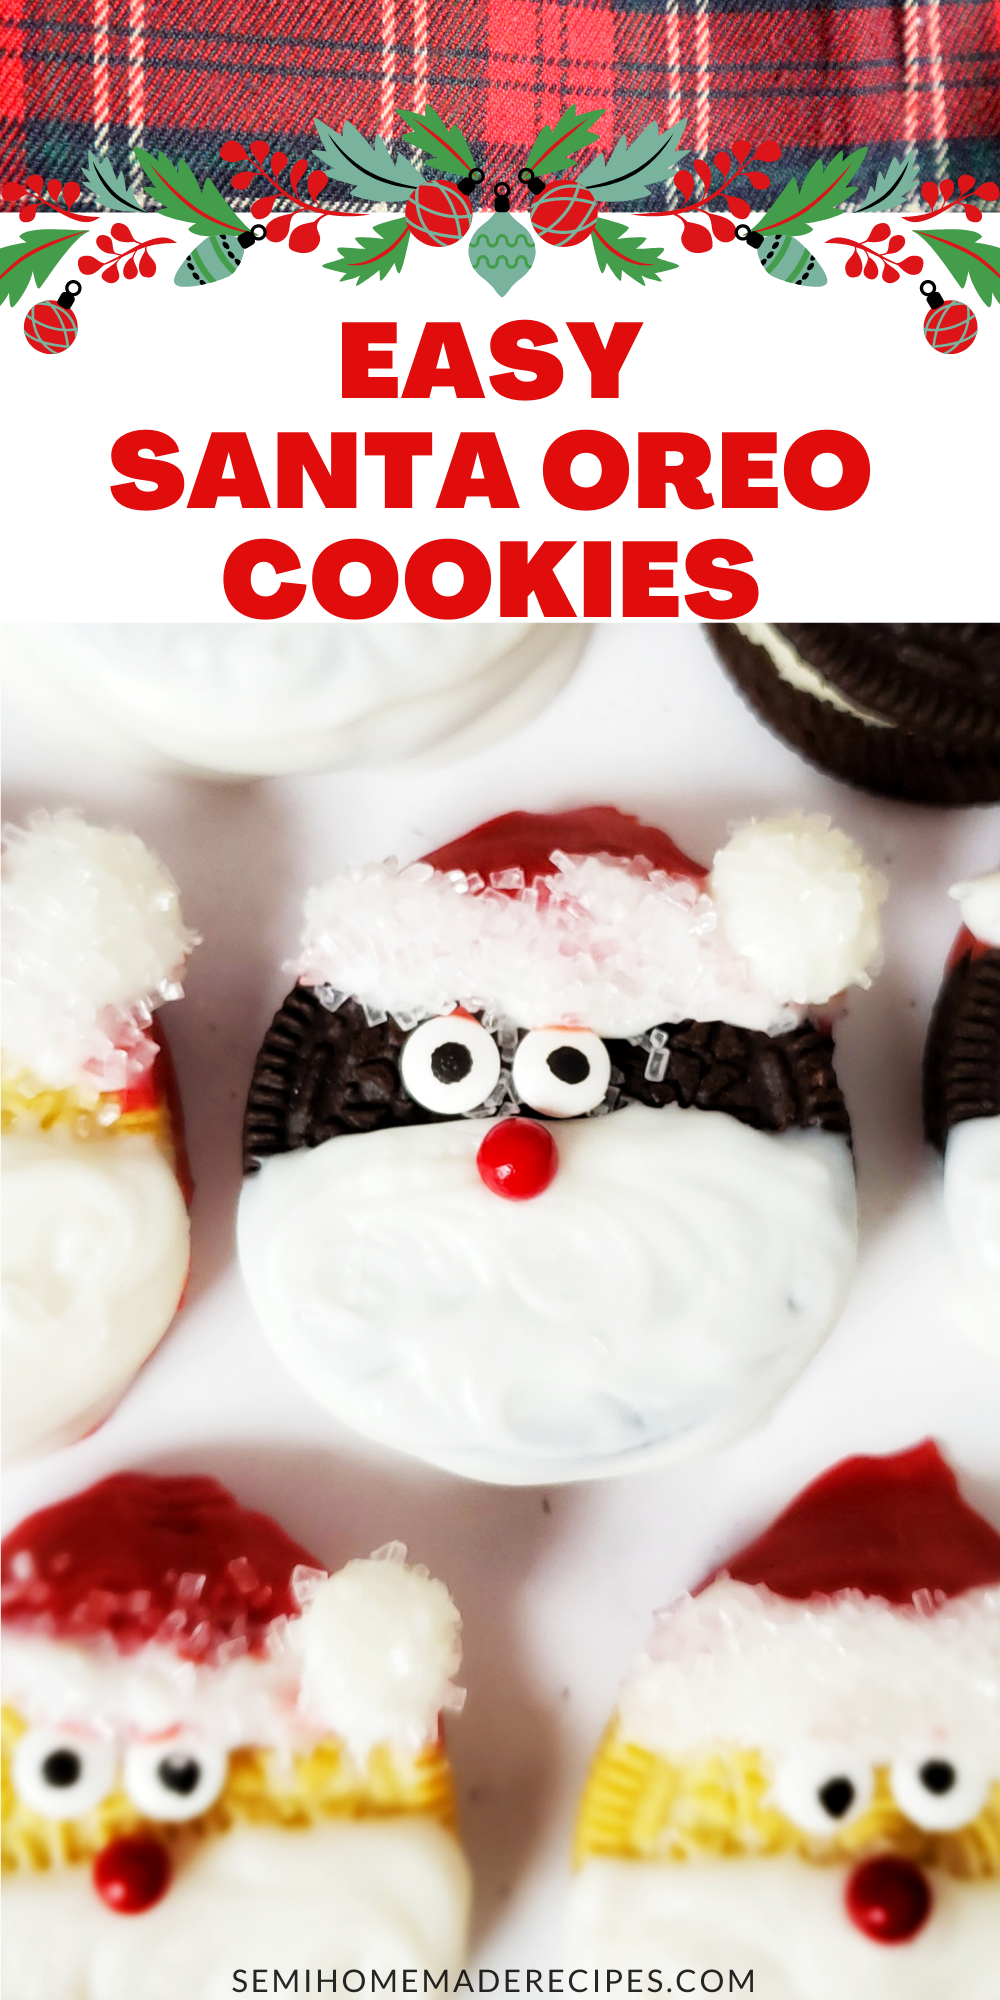 Take your favorite chocolate sandwich cookie and turn it into a sweet old Santa Clause with these directions for Easy Santa Oreo Cookies!